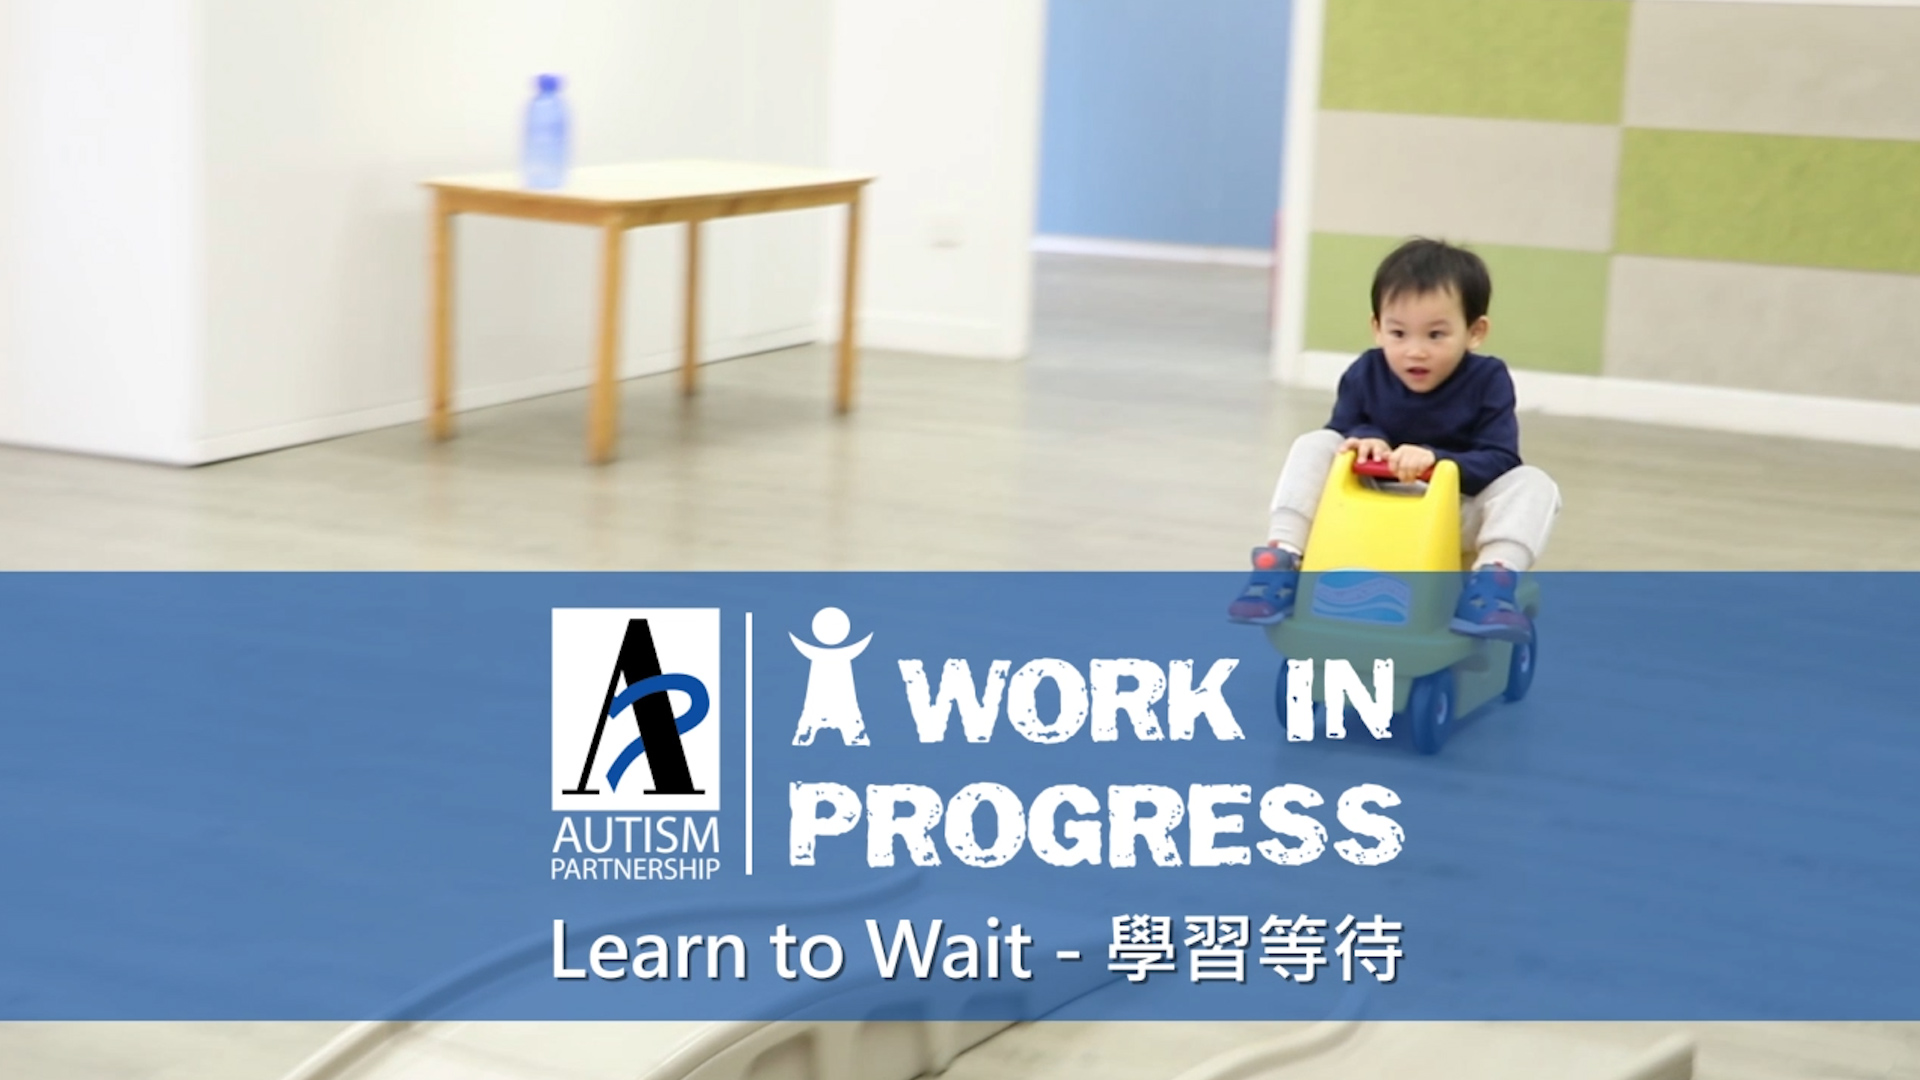 autism-partnership-kimis-training-progress-learn-to-wait